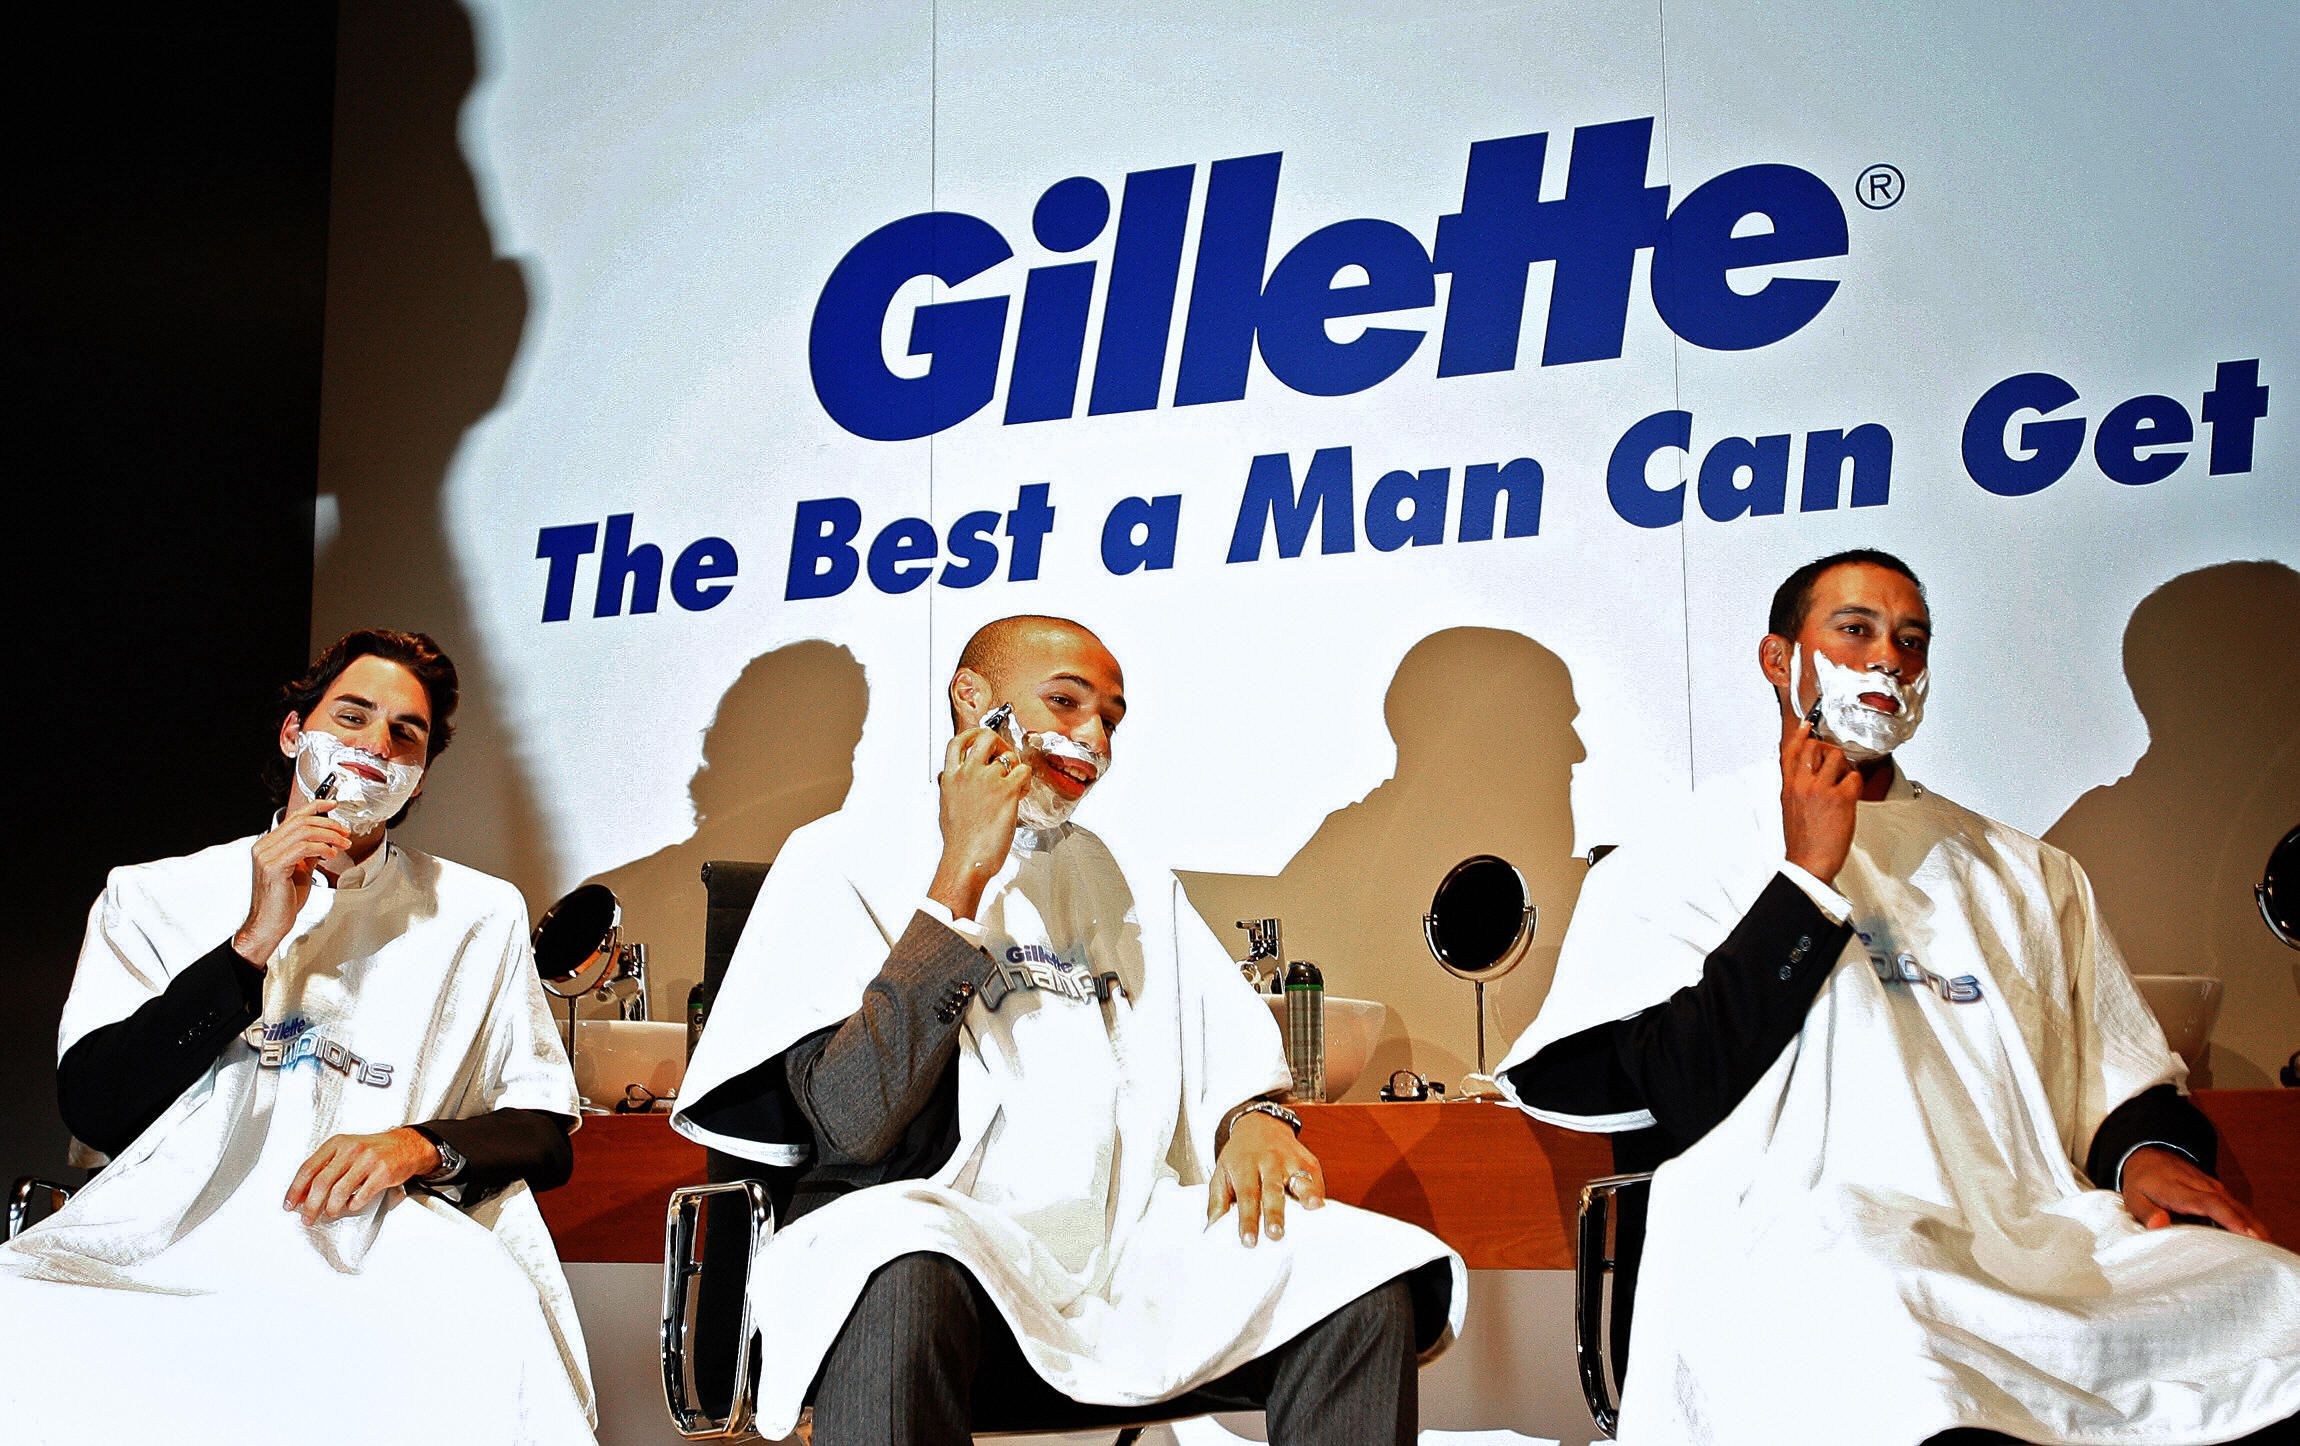 Men Are Threatening to Boycott Gillette Over #MeToo Ad